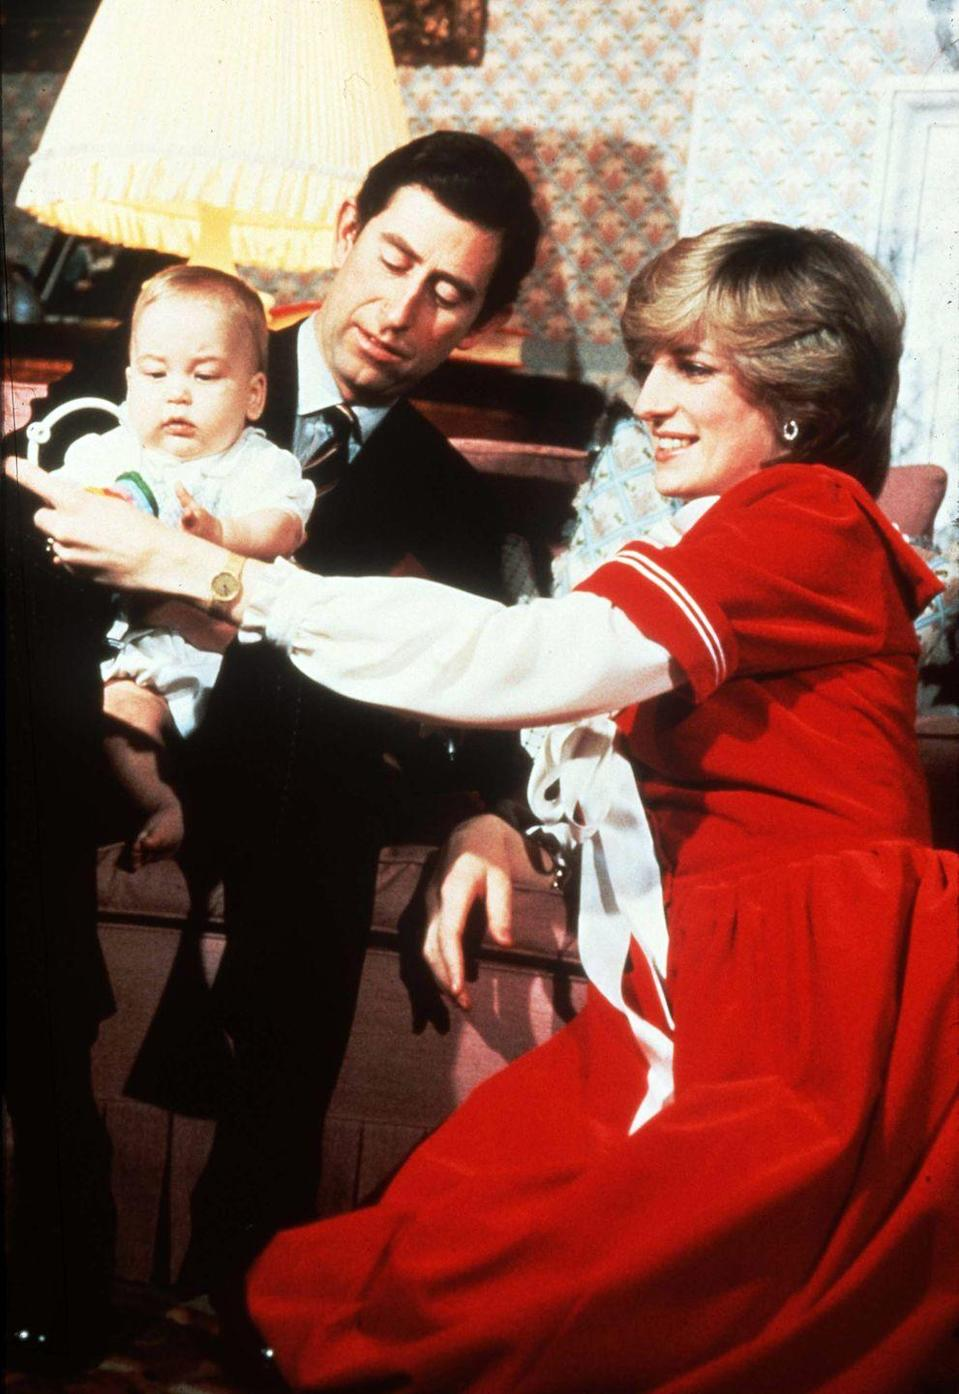 <p>Princess Diana and Prince Charles with a young Prince William at Kensington Palace around Christmastime.</p>